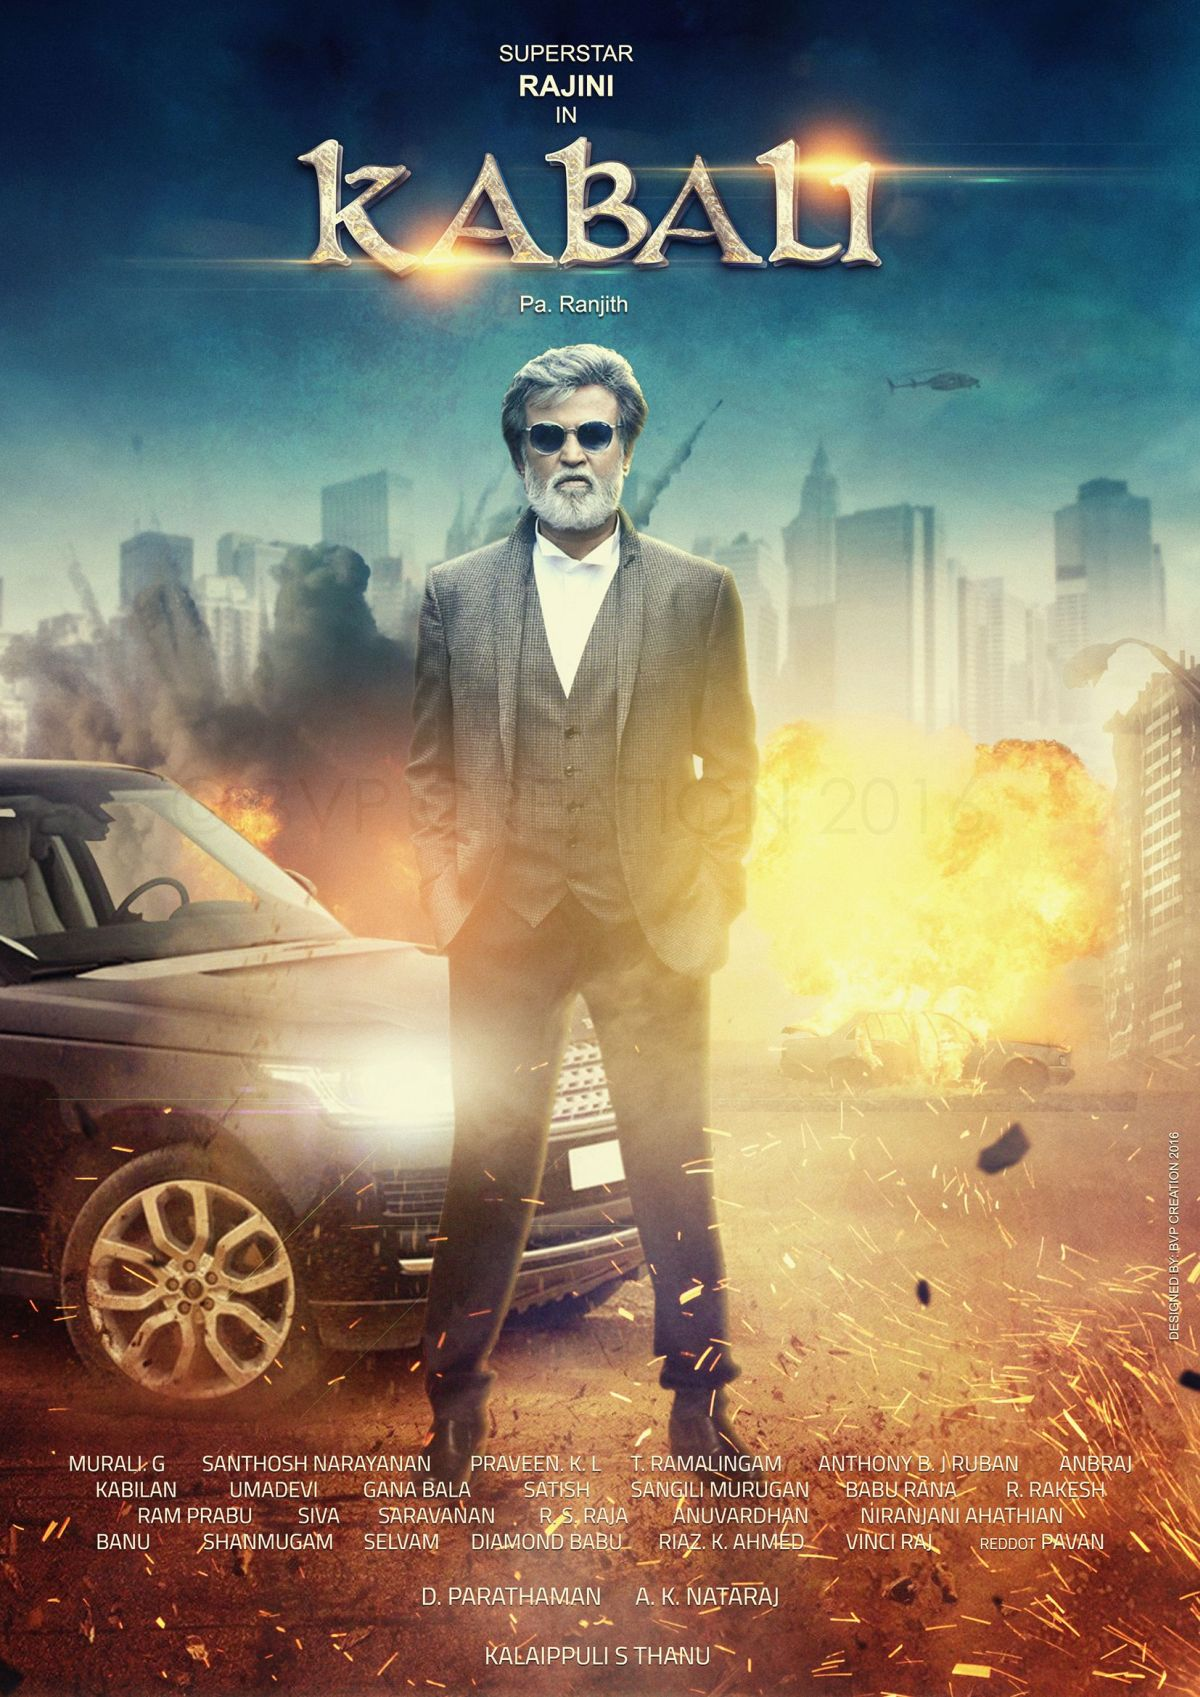 india movie poster design kabali